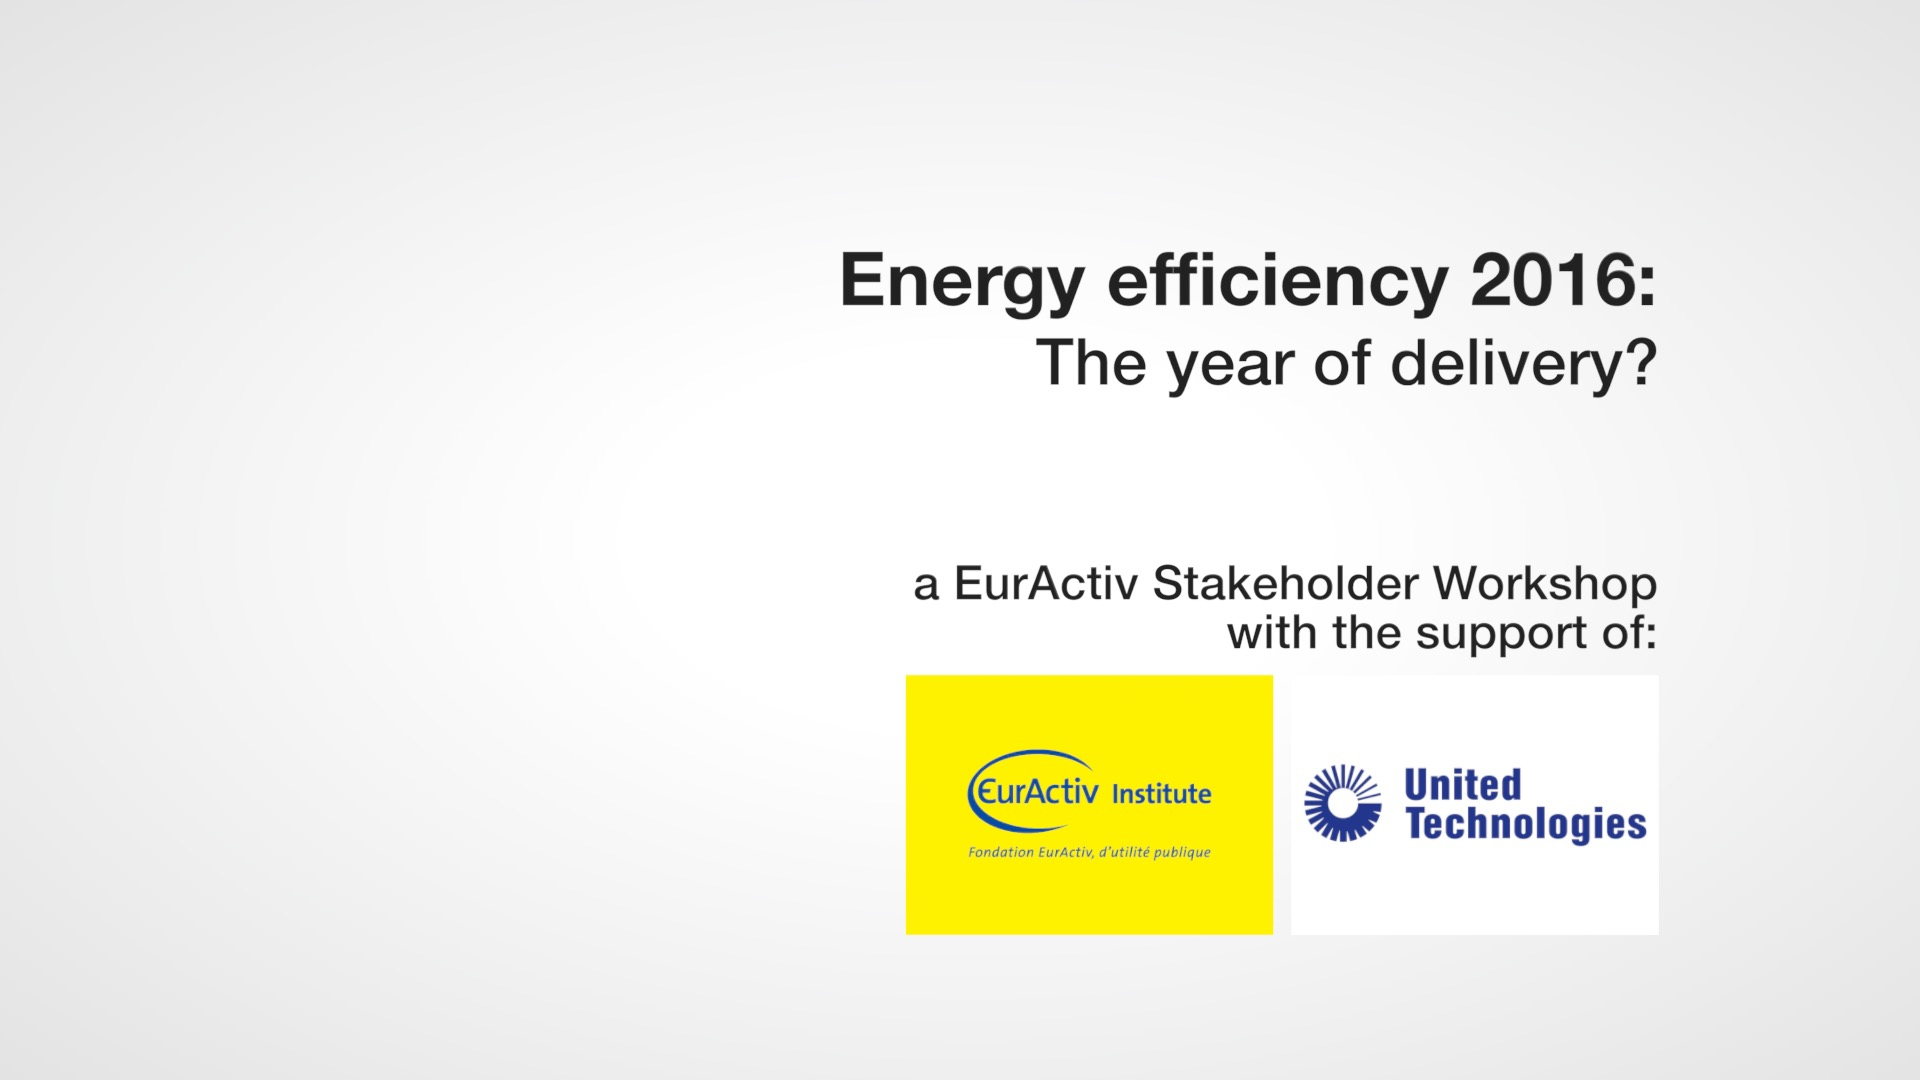 Energy efficiency 2016: The year of delivery?